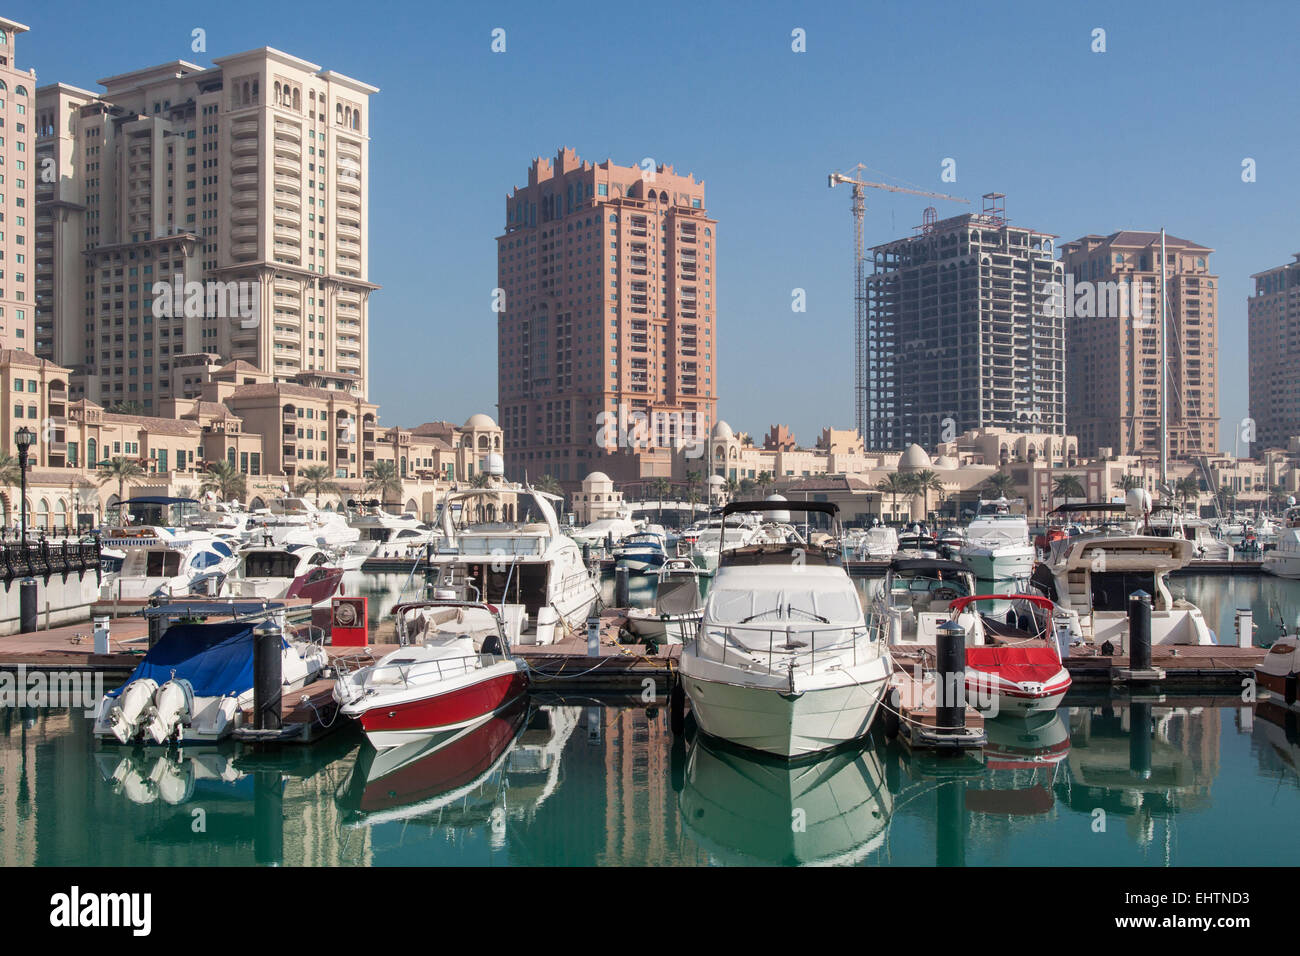 ILLUSTRATION OF QATAR, PERSIAN GULF, MIDDLE EAST - Stock Image